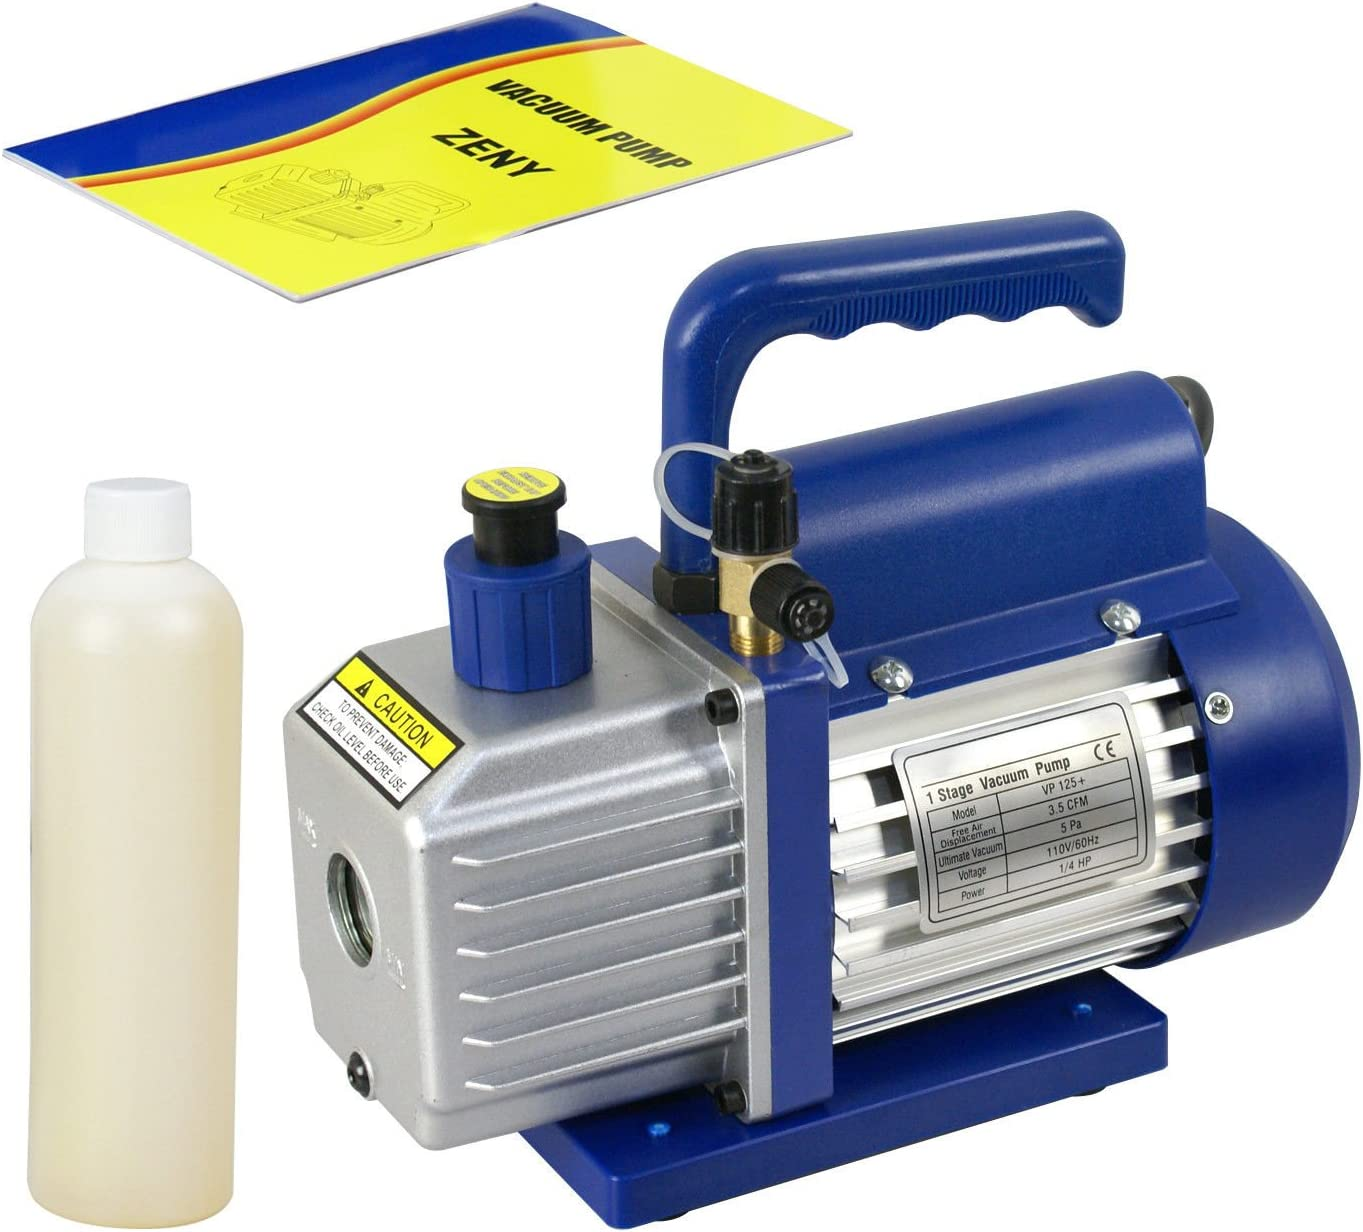 9TRADING 3.5CFM 1/4HP Rotary Vane Deep Vacuum Pump HVAC AC Air Tool R410a R134 W/Free Oil, Free Tax, Delivered within 10 days